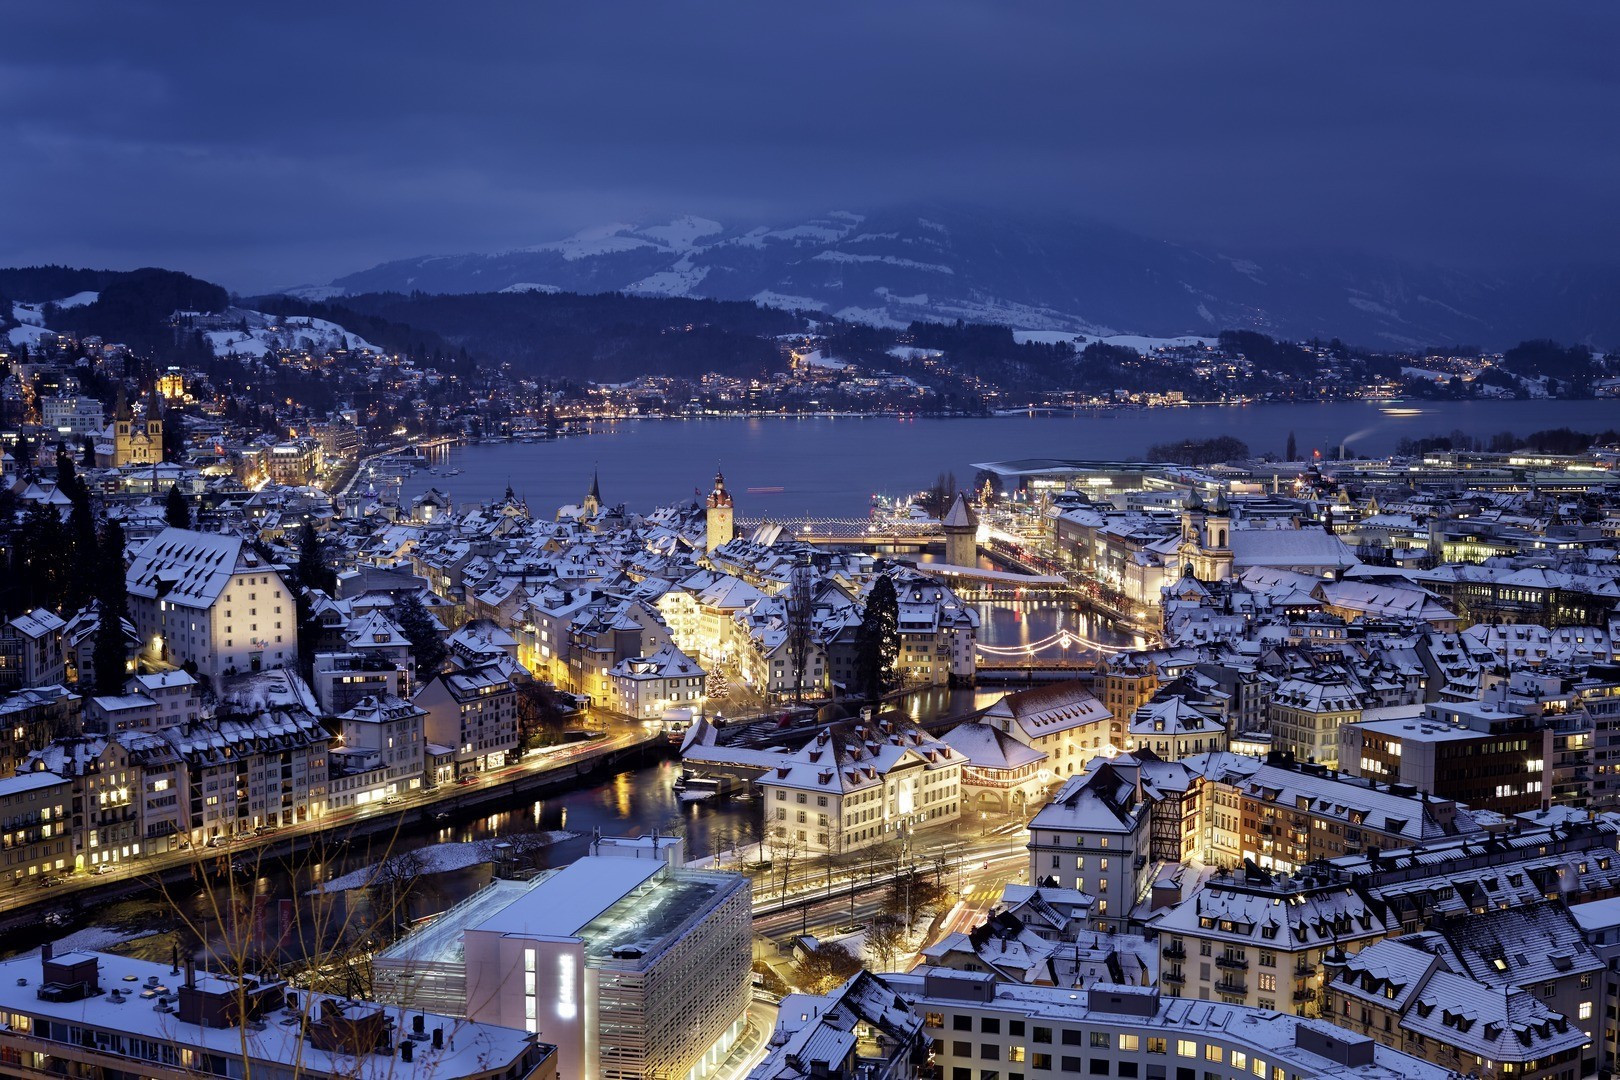 Lucerne 2021 Winter World University Games postponed due to COVID-19